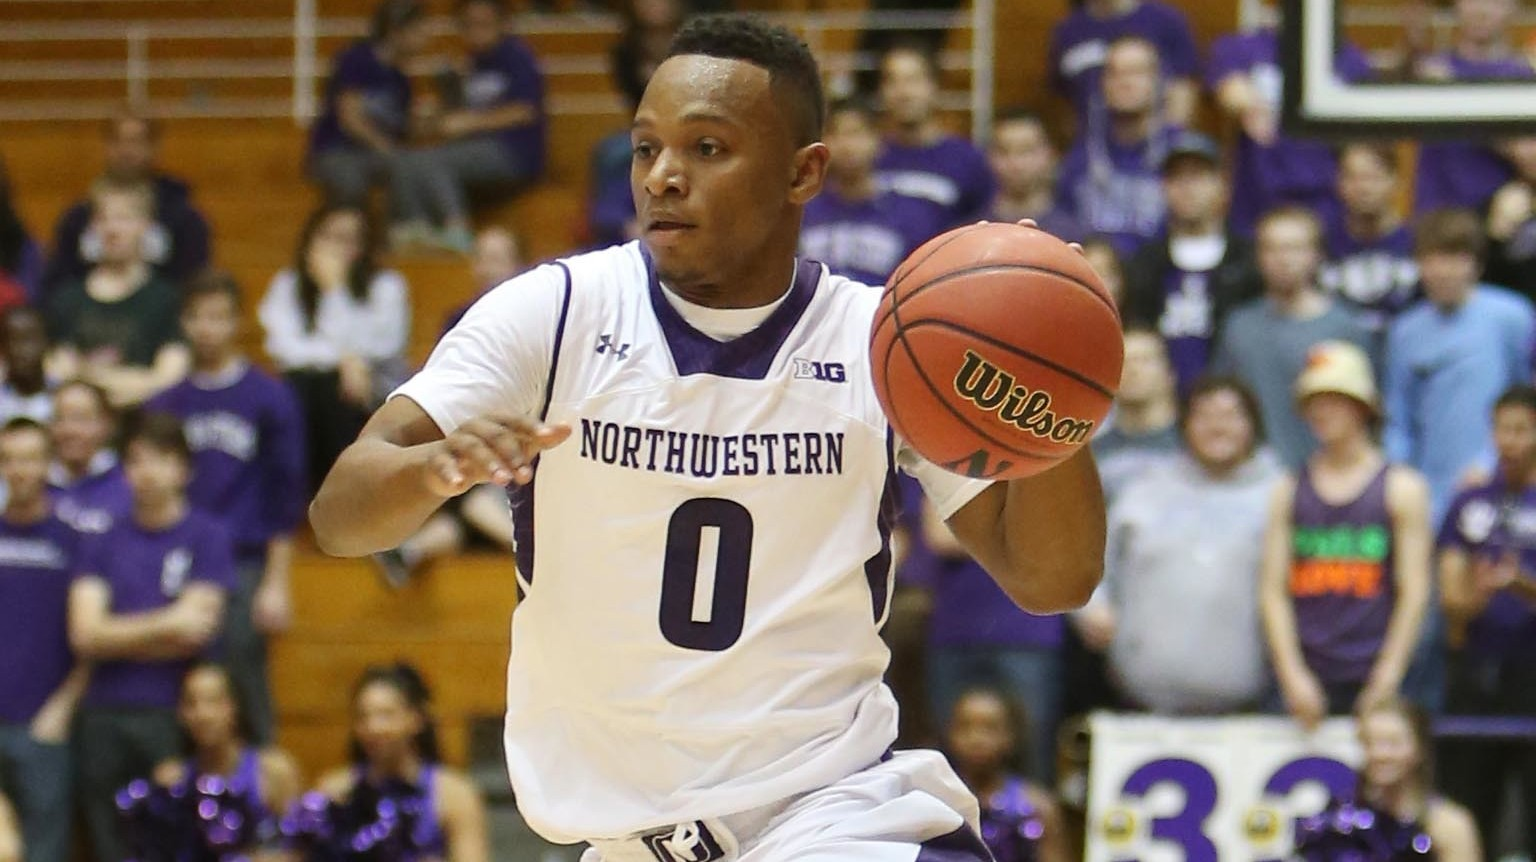 Did Northwestern Basketball Run Off Johnnie Vassar?